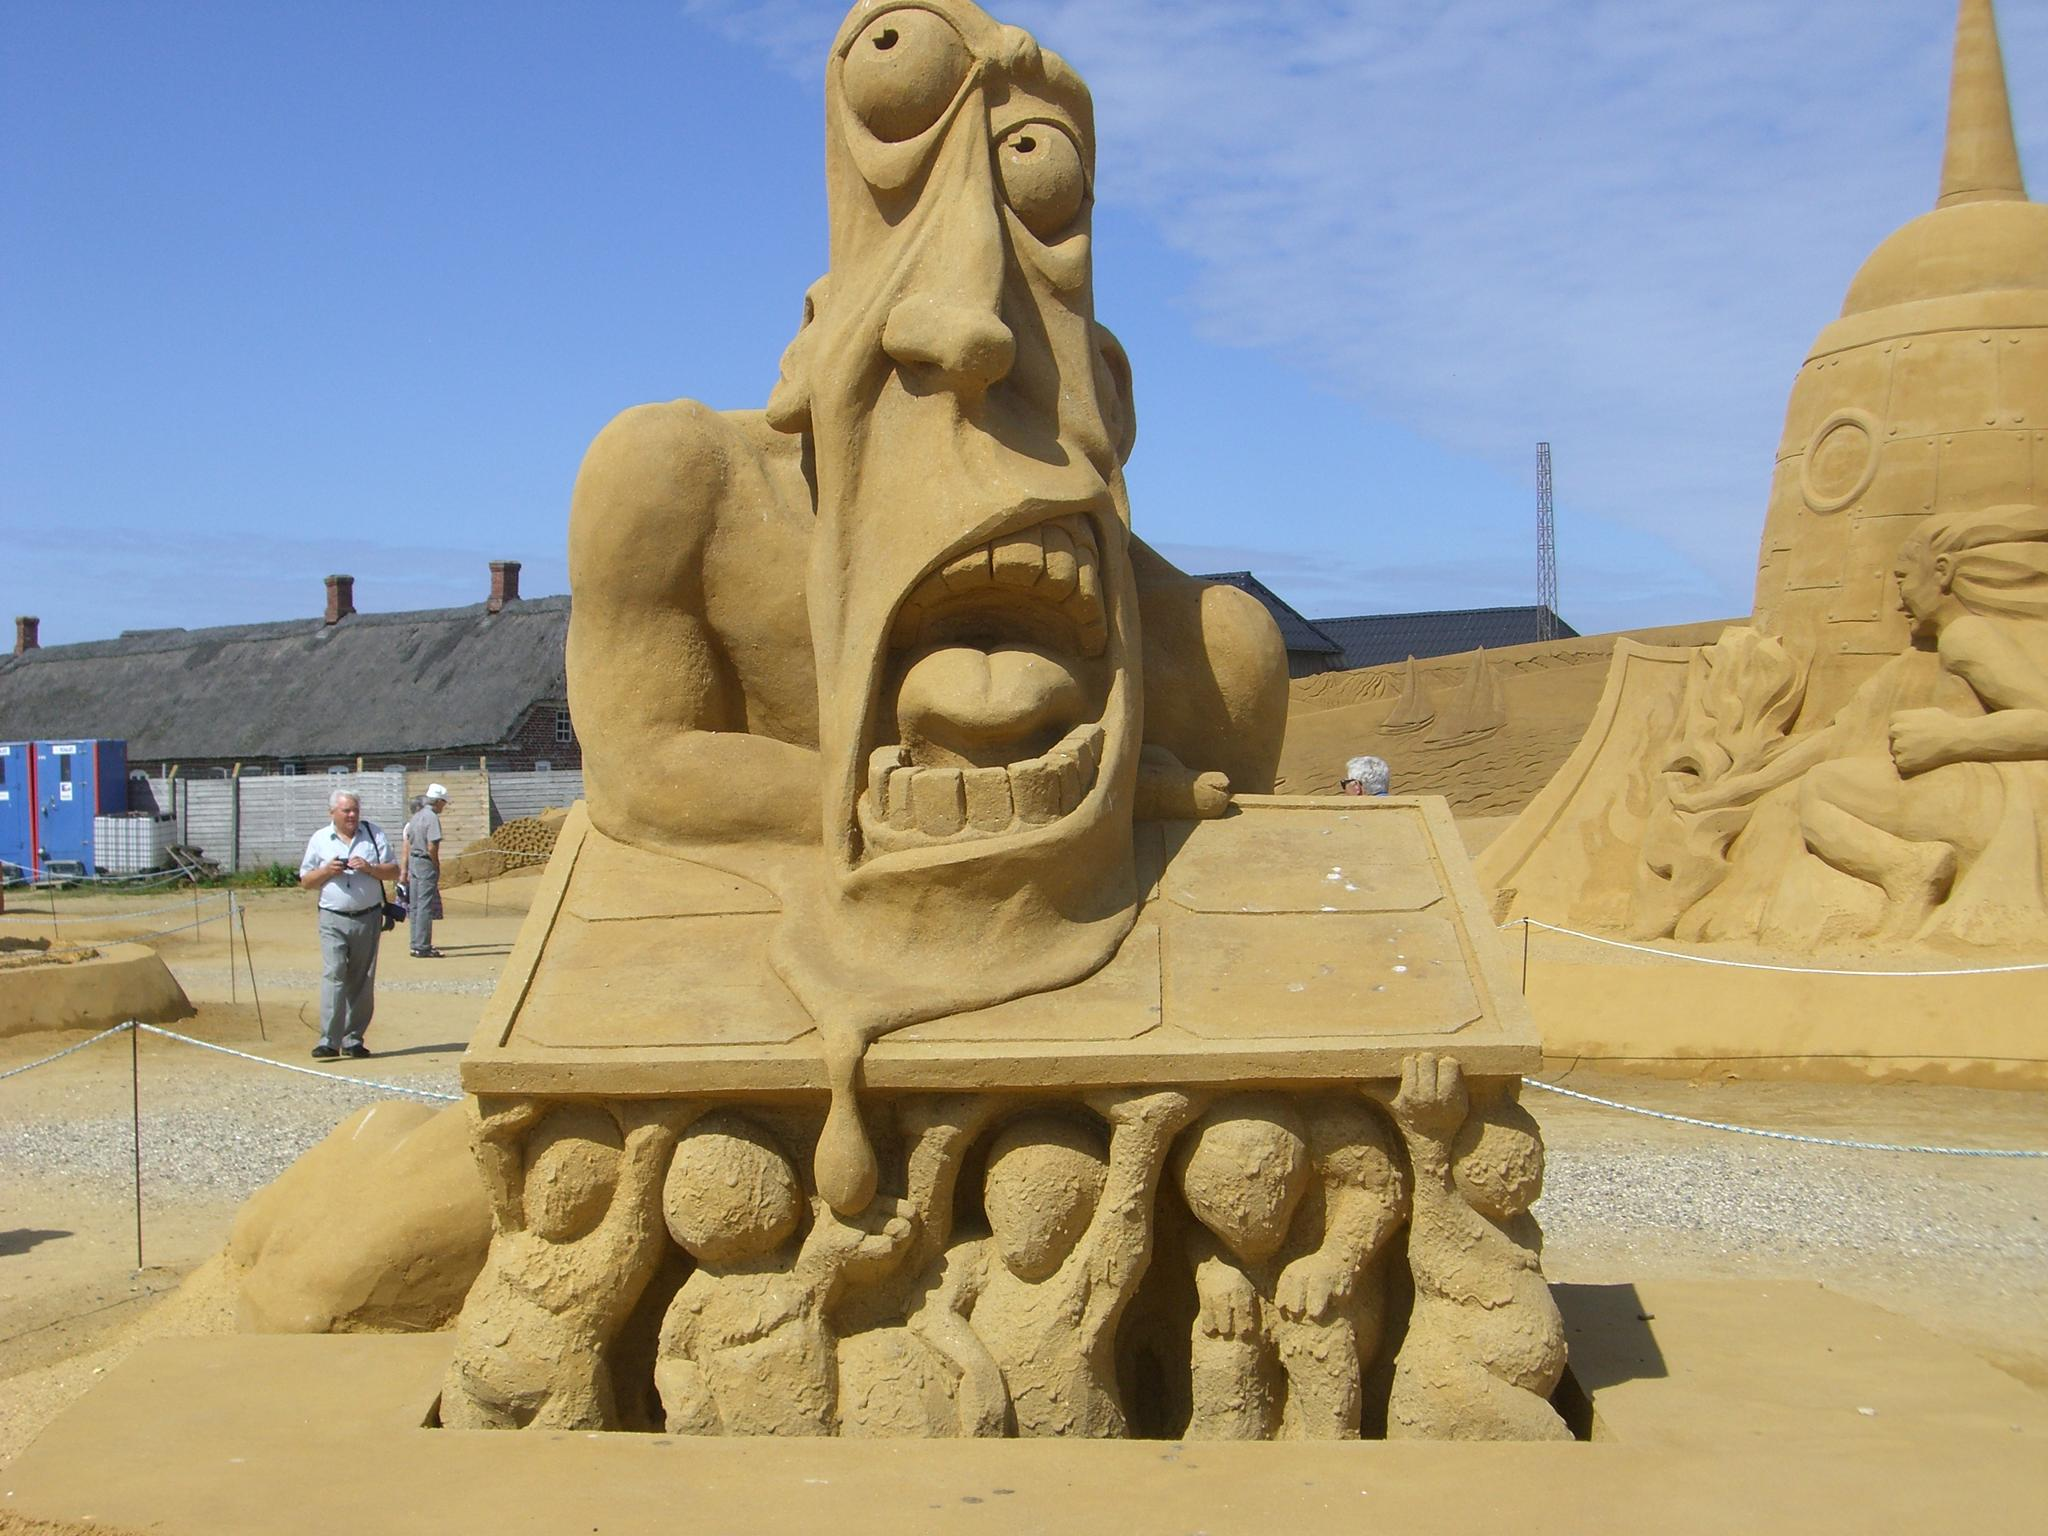 Sandsculptures by Sijb Huijser